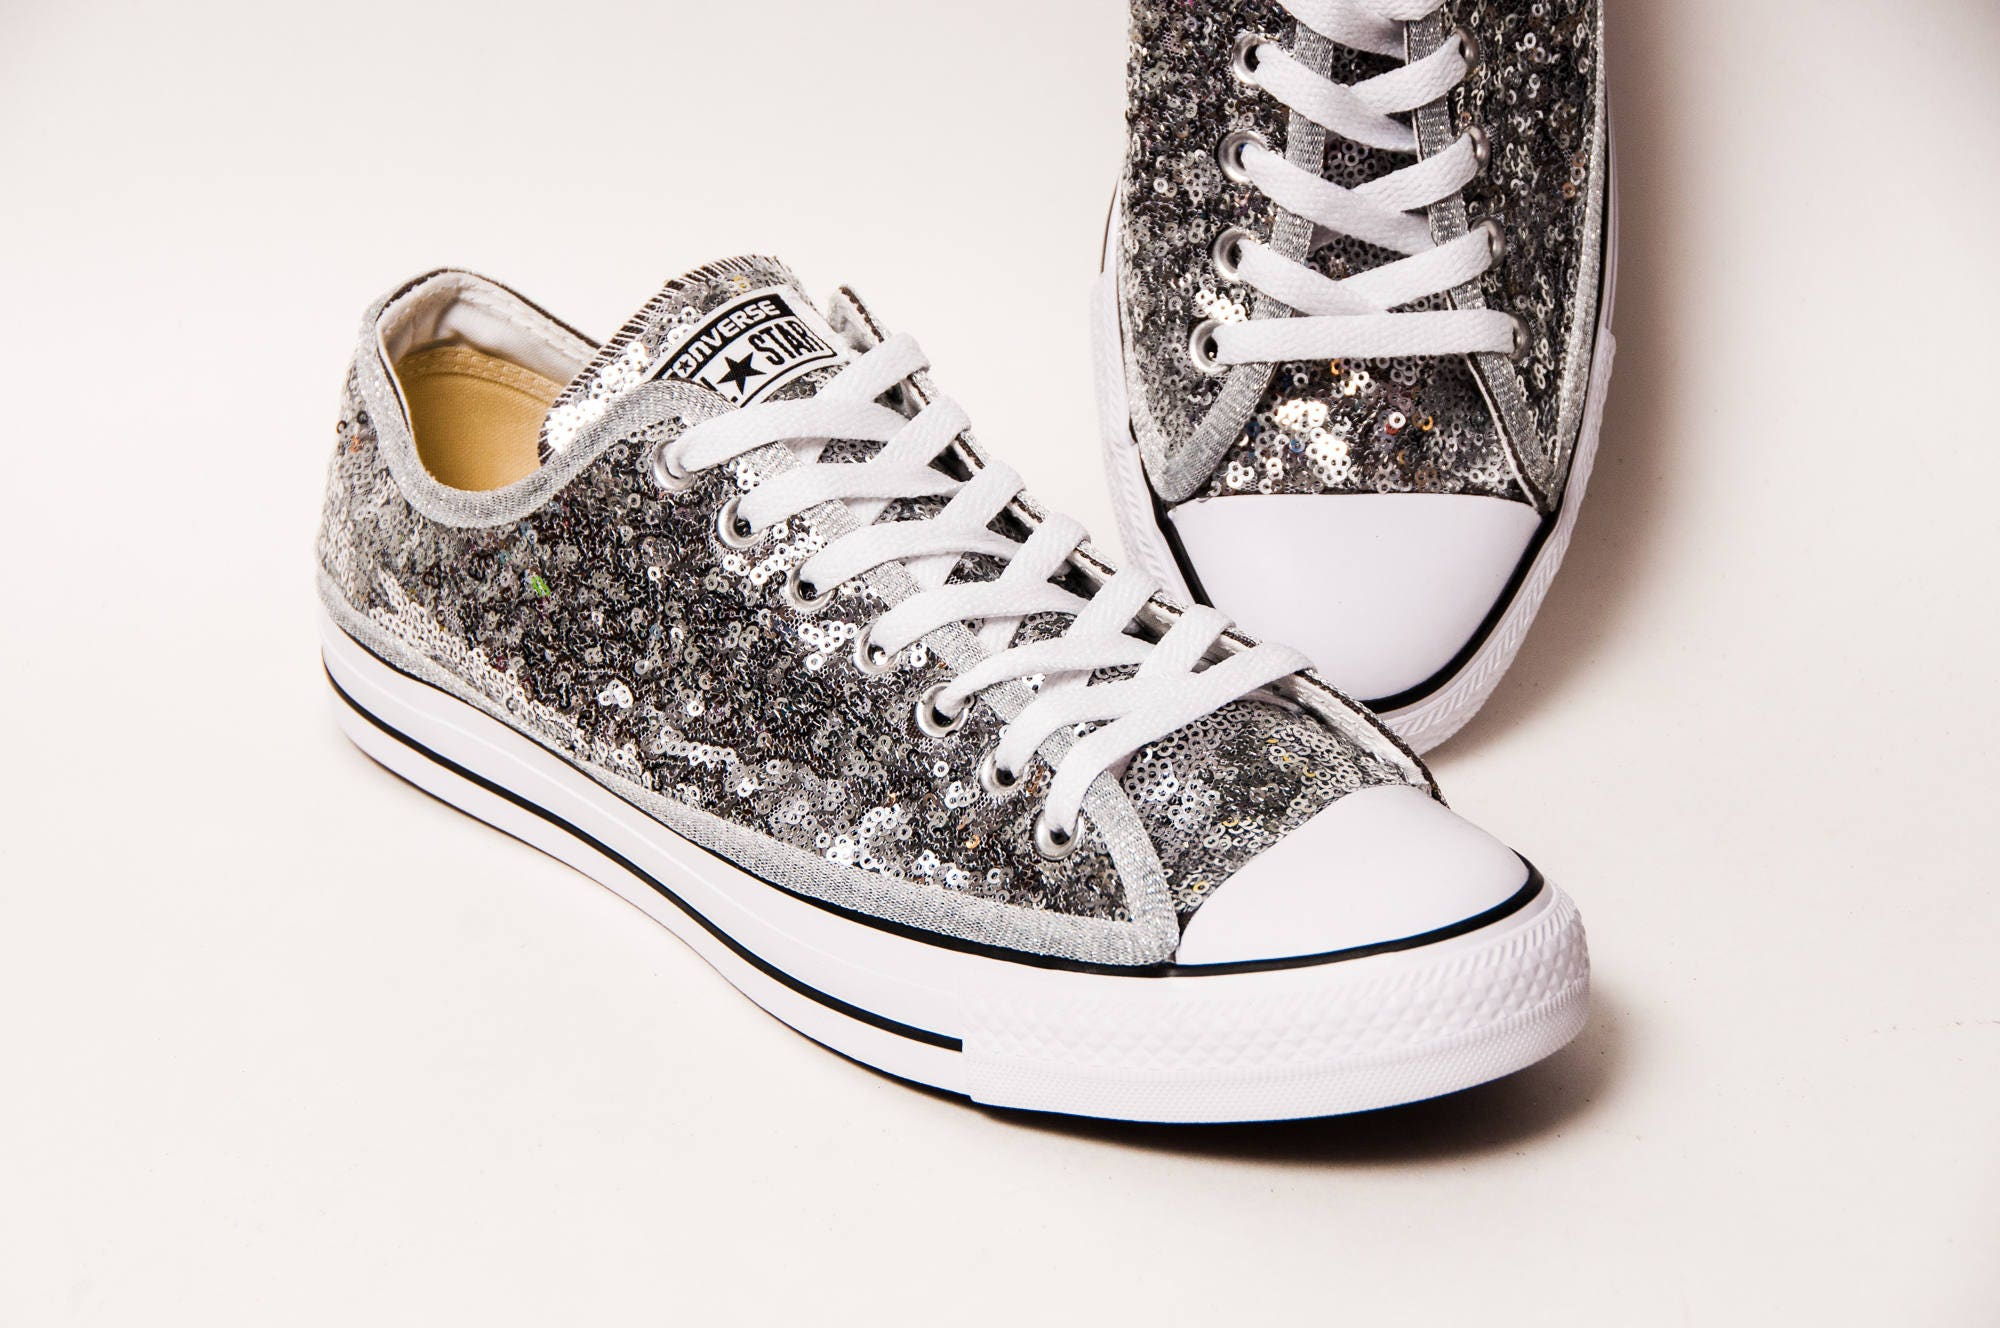 Tiny Sequin Silver Canvas Converse All Star Low Top with